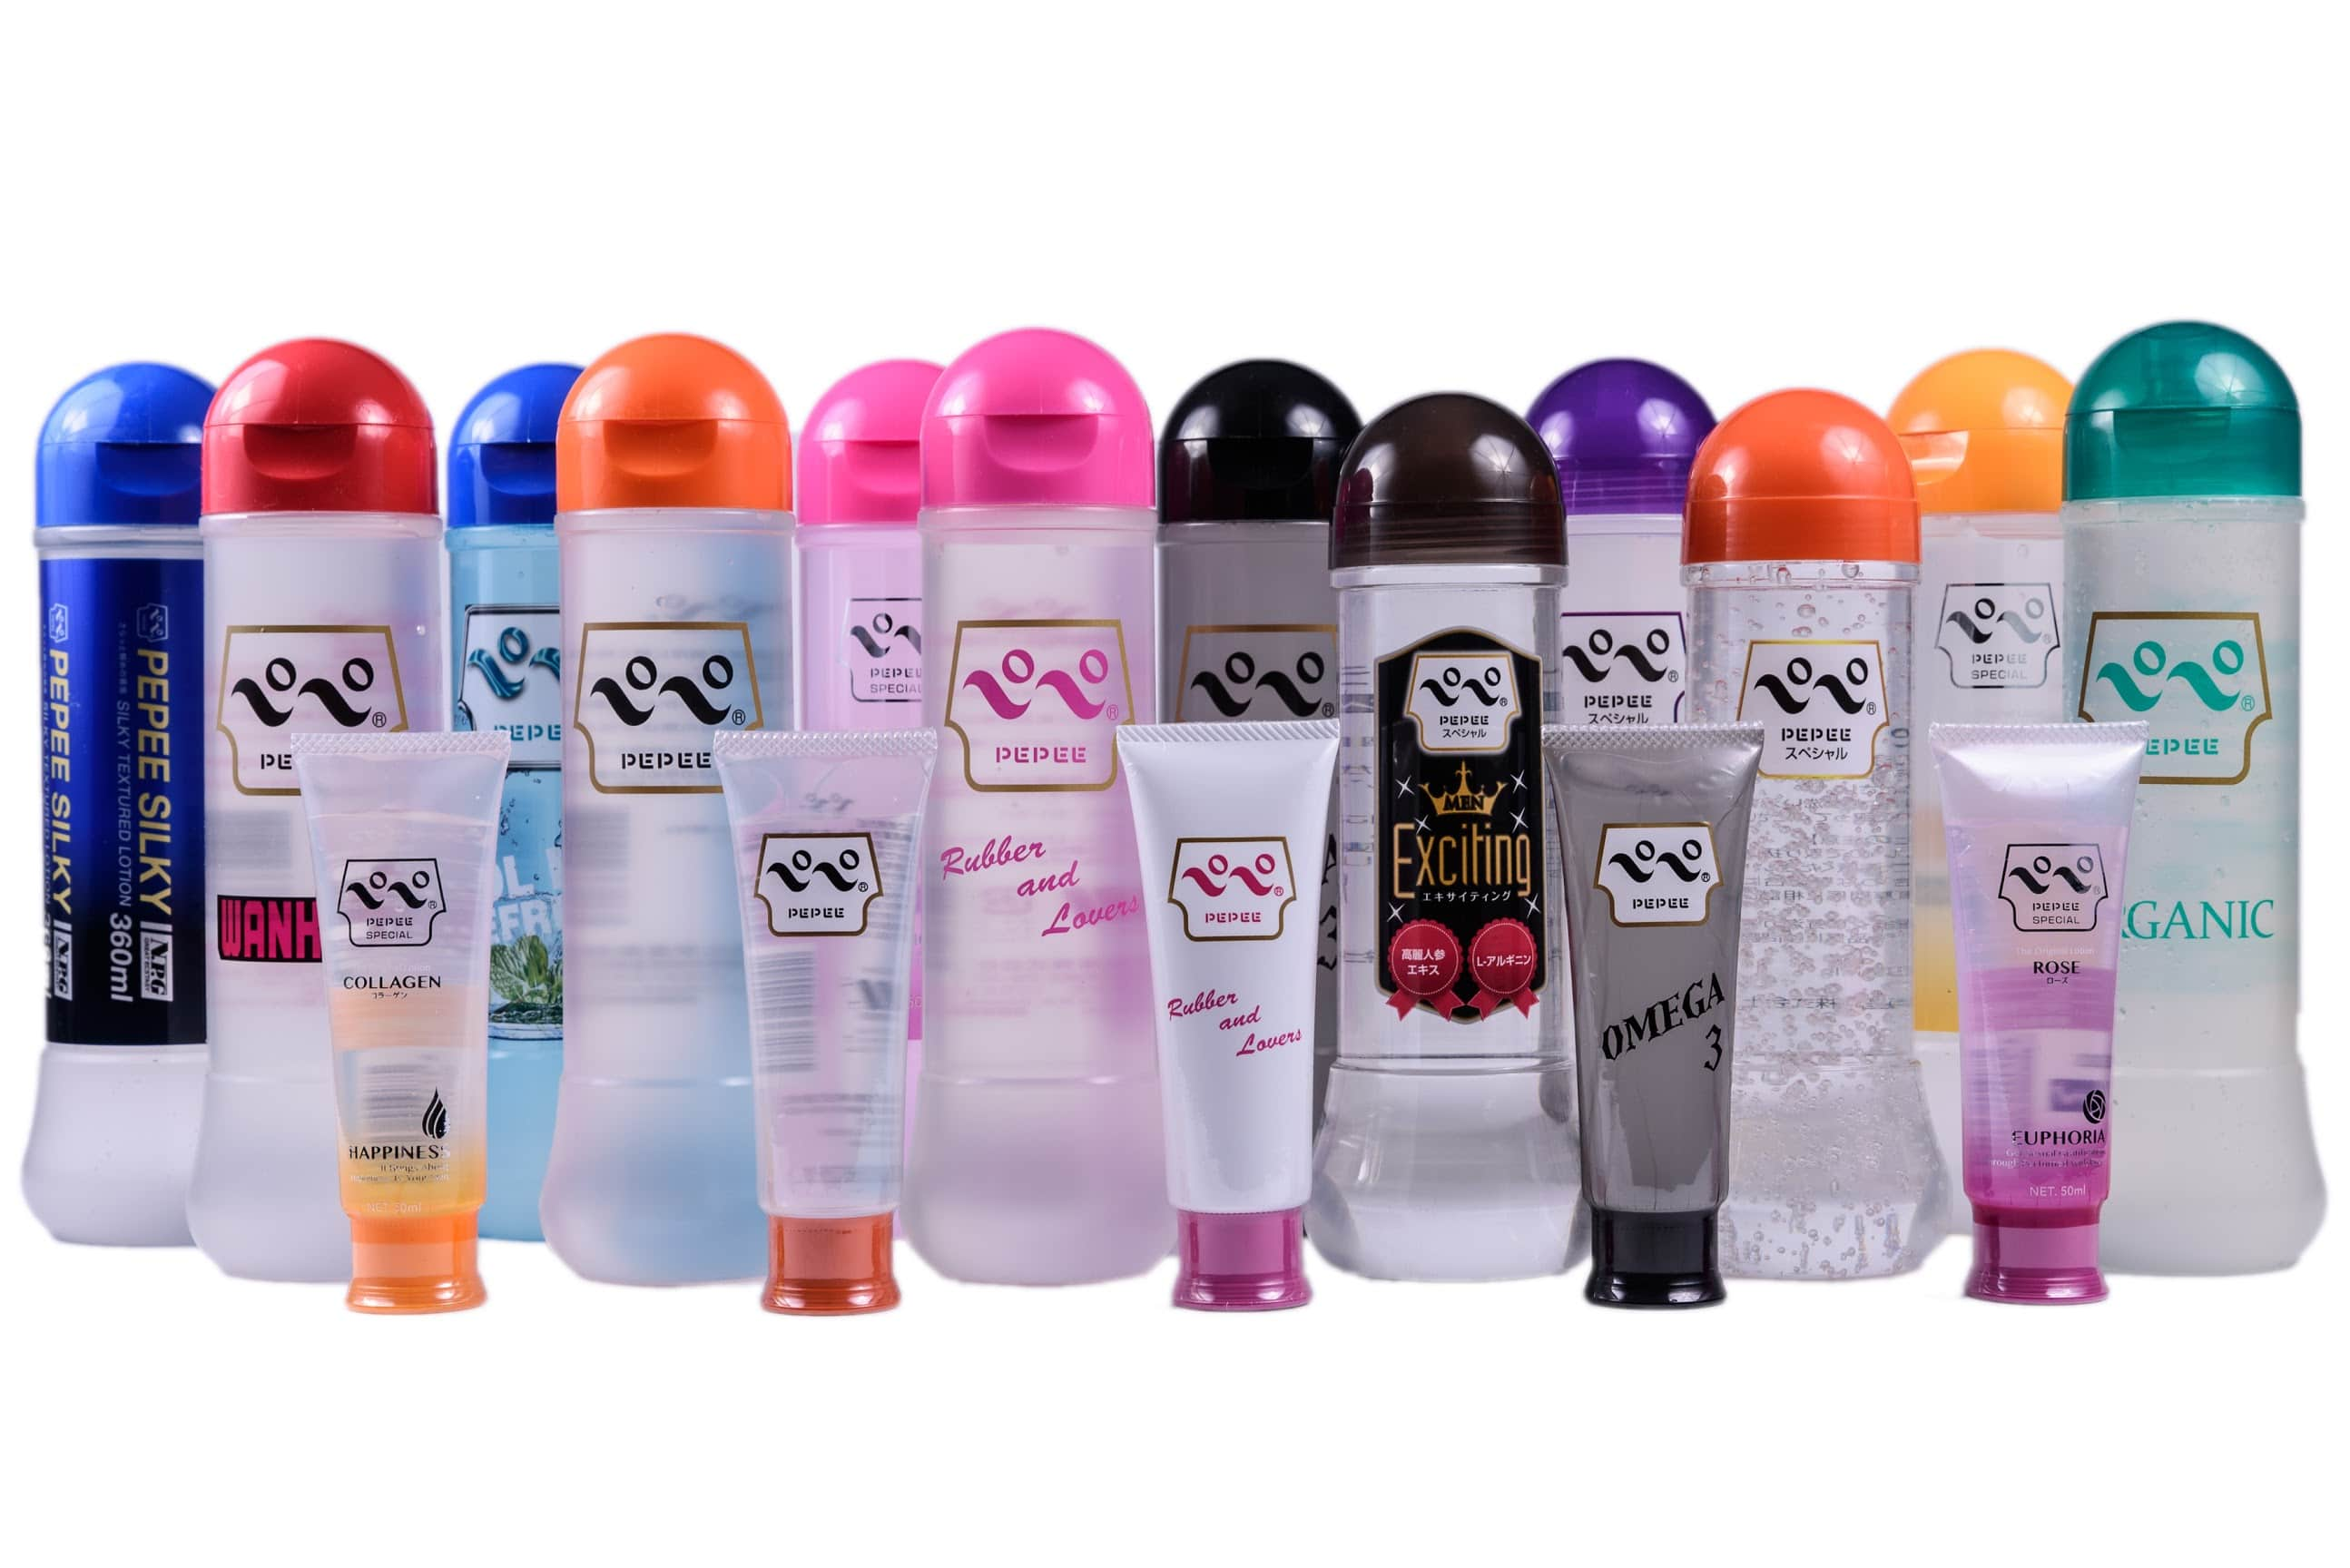 An assortment of Eroticgel Pepee 360ml Lubricants